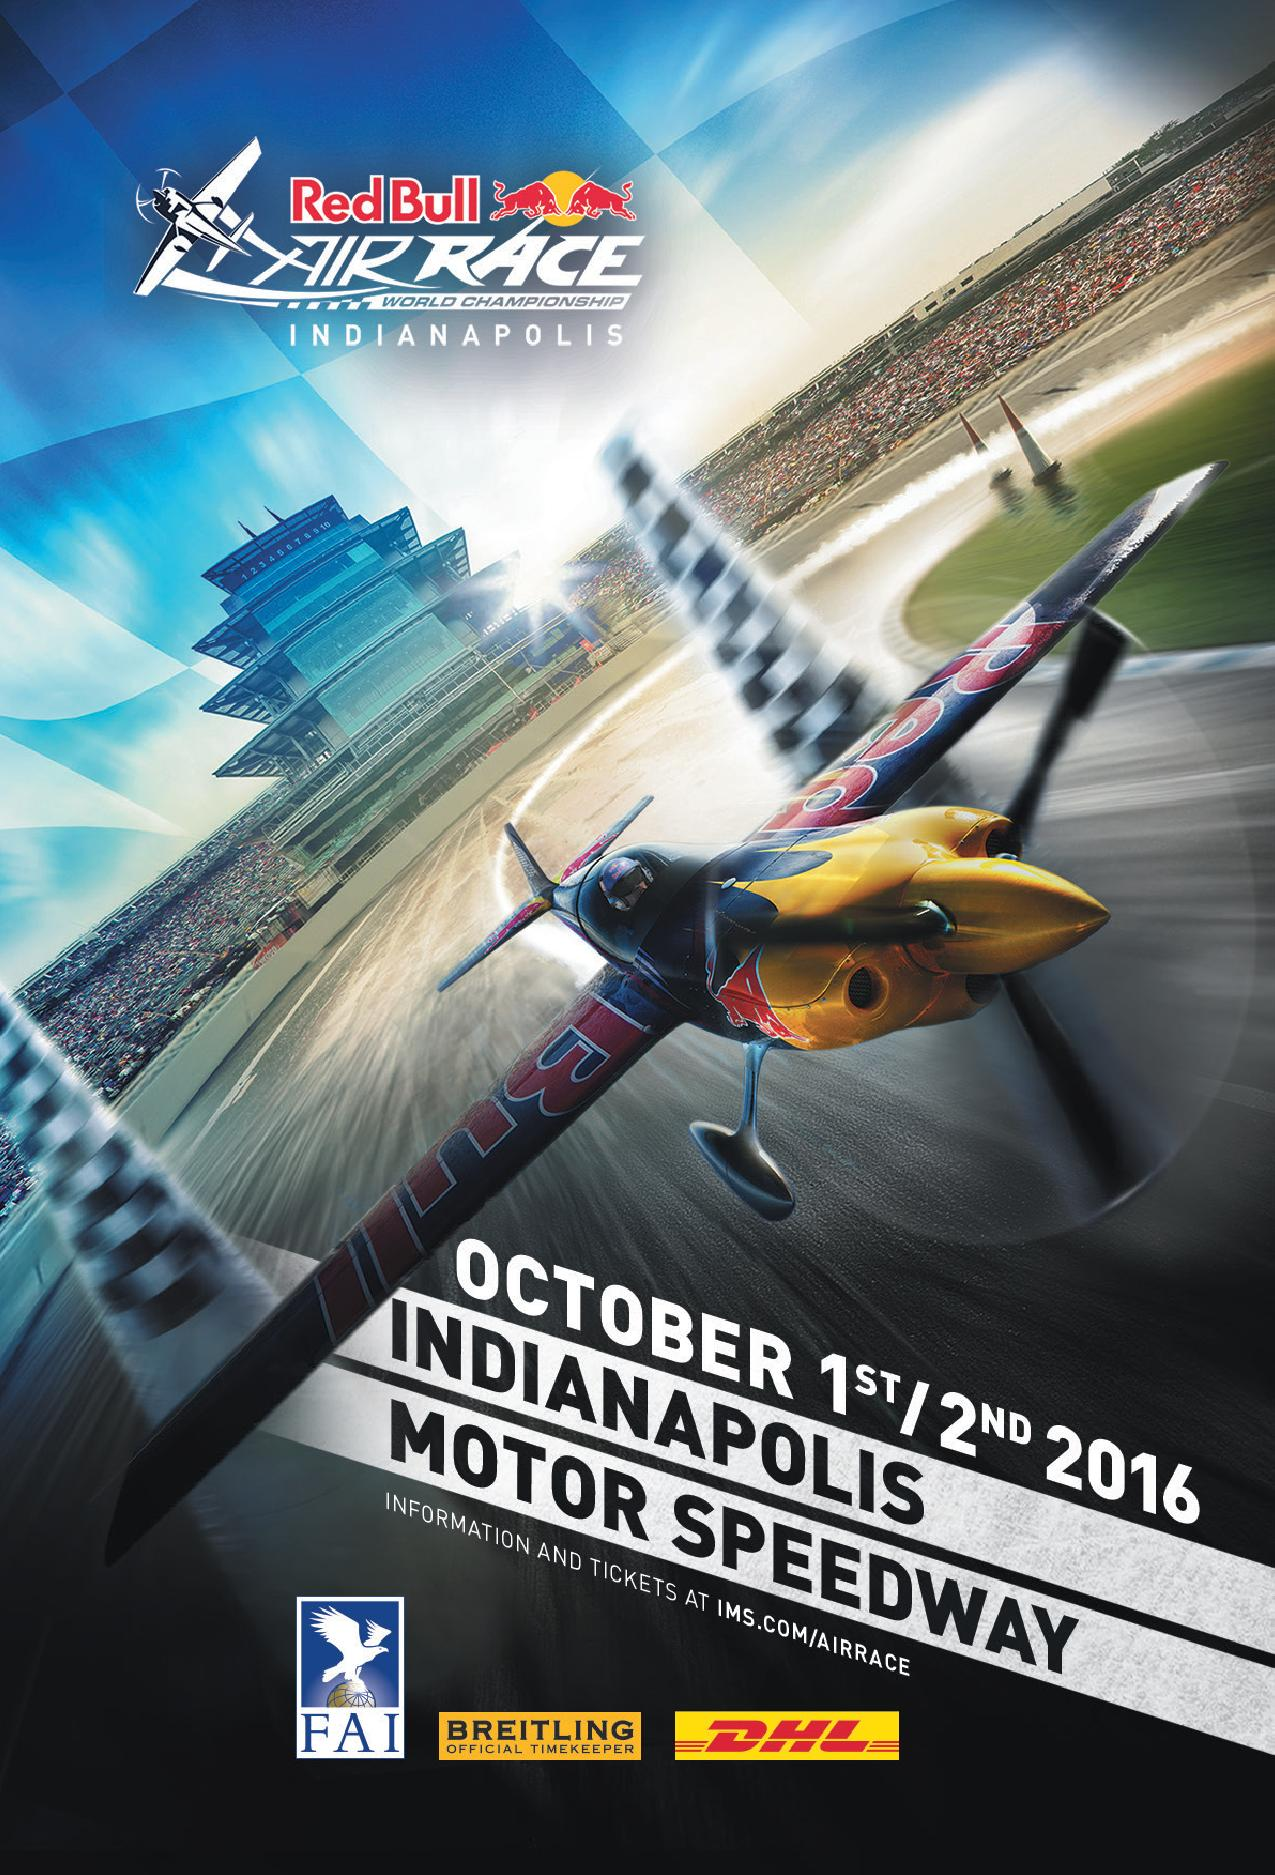 Red Bull Air Race @ Indianapolis Motor Speedway